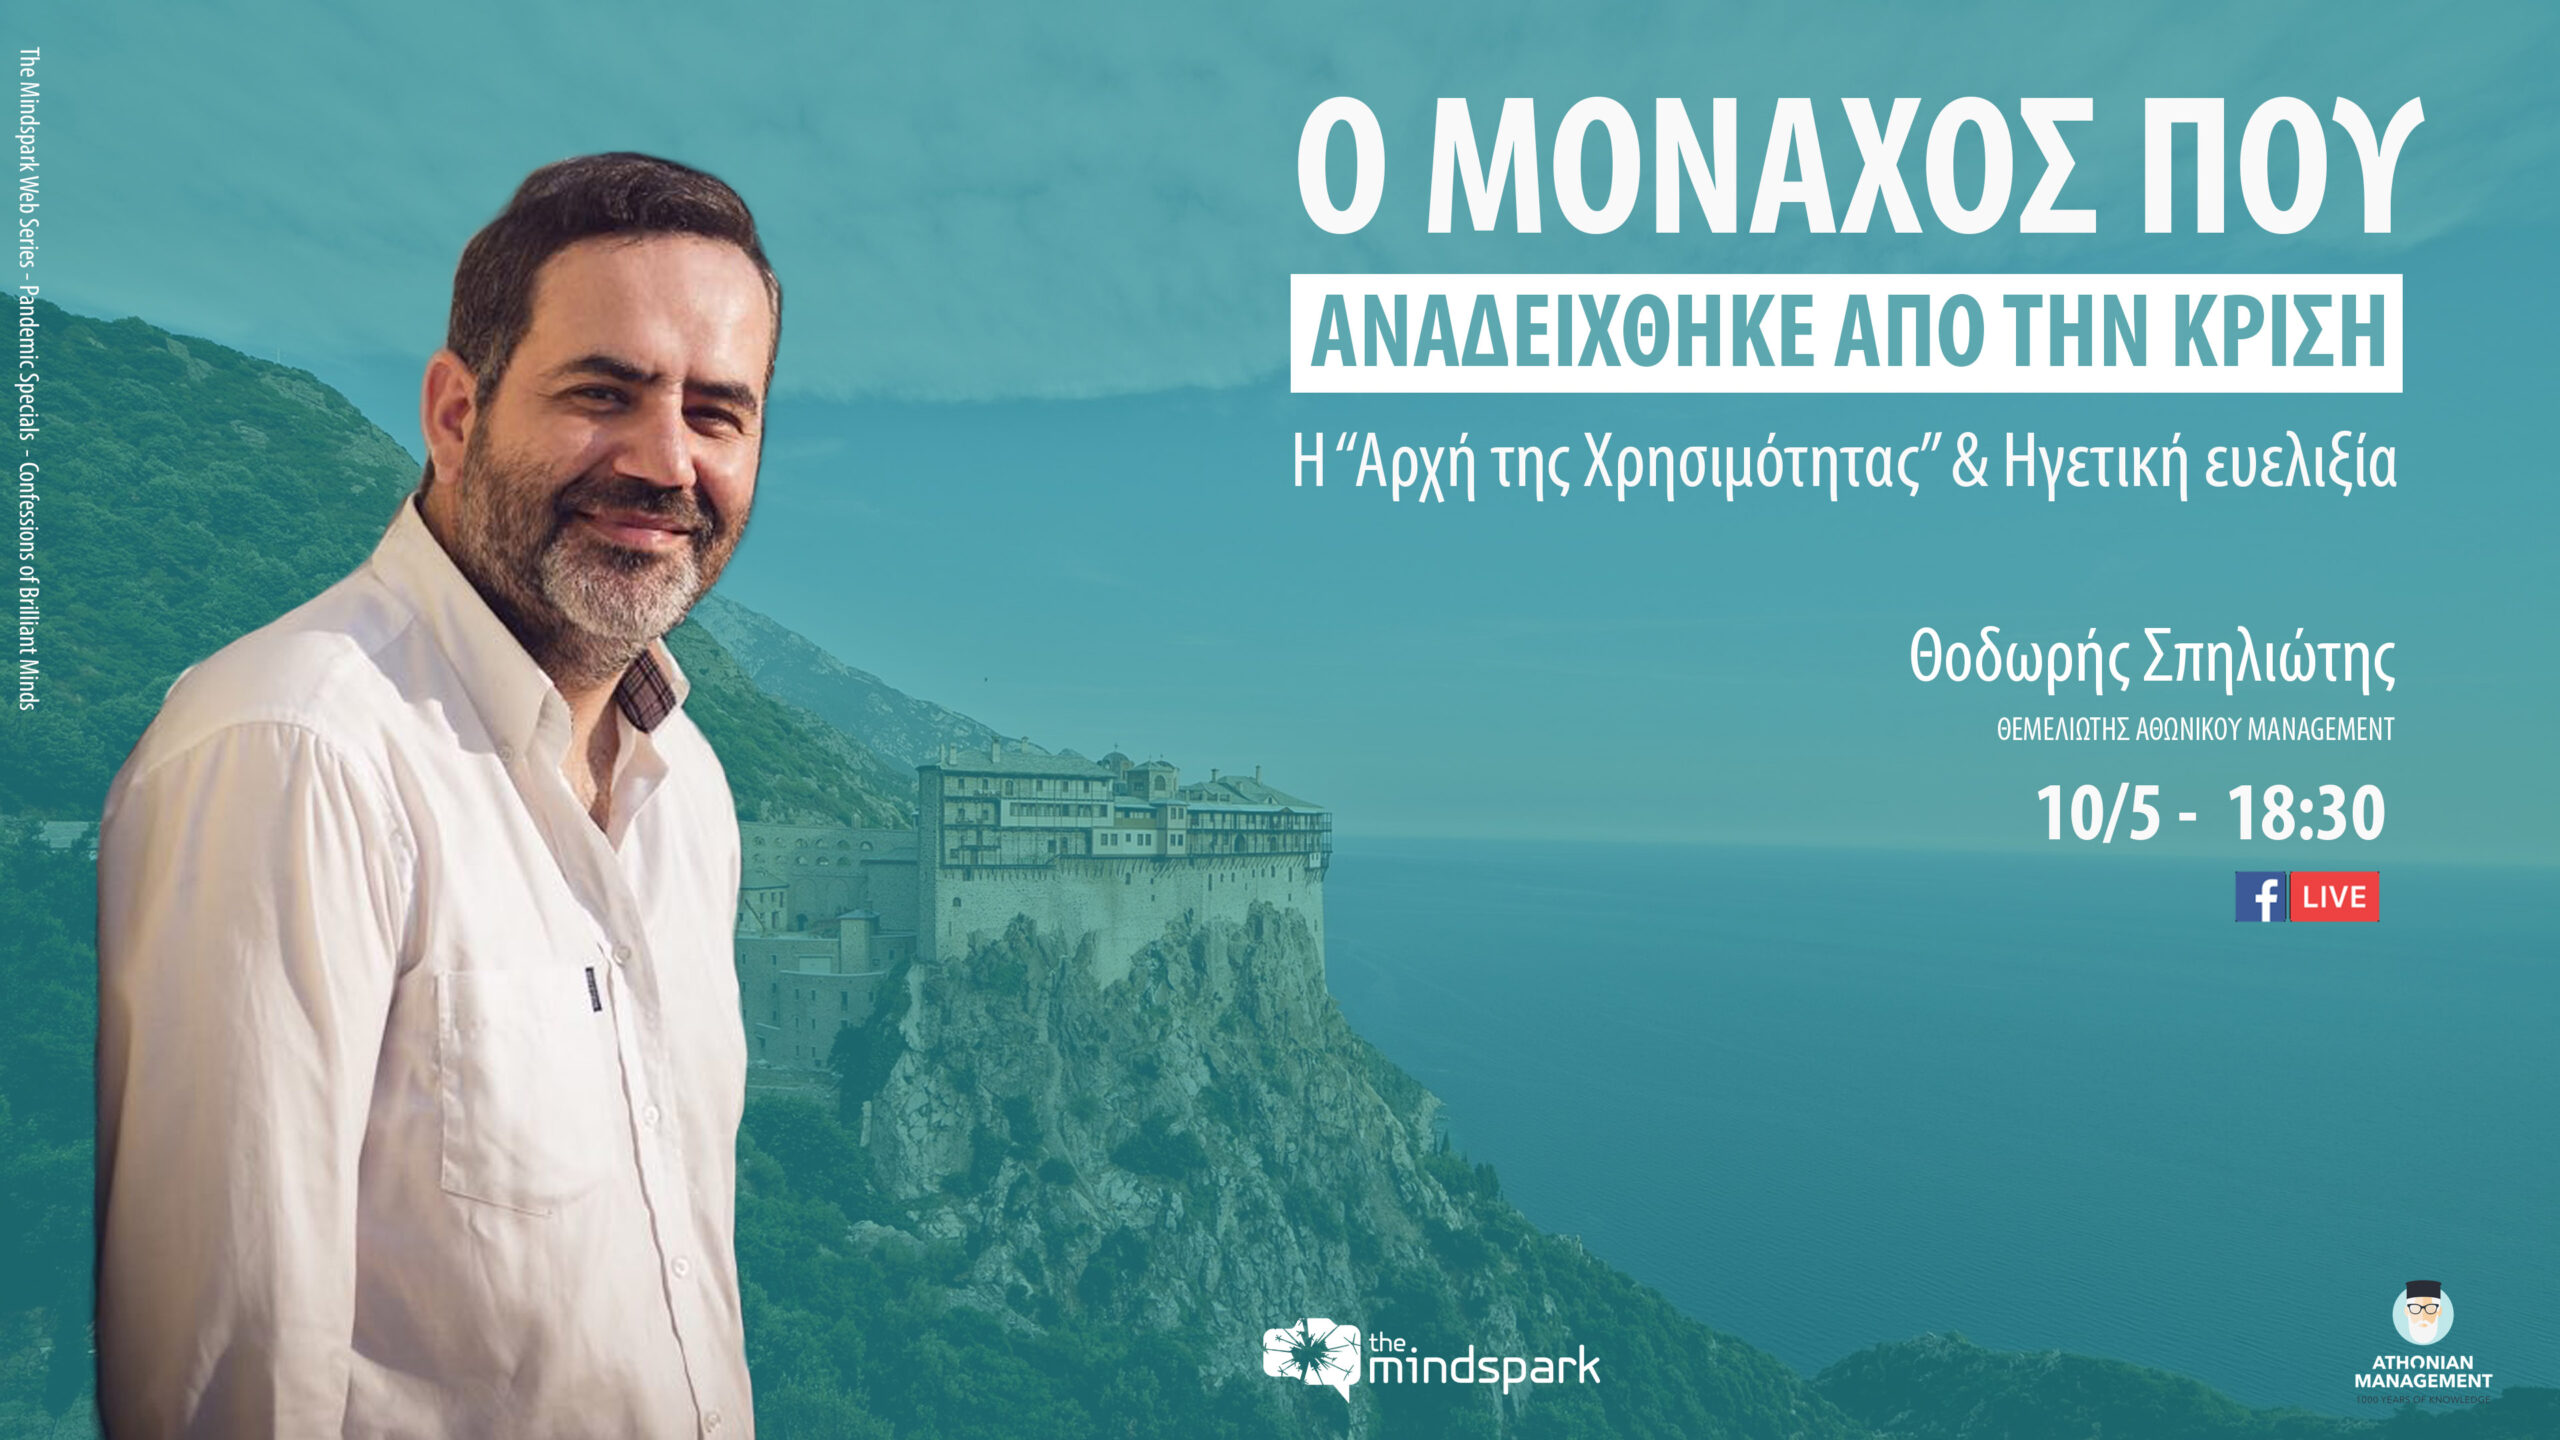 Athonian Management Σπηλιώτης